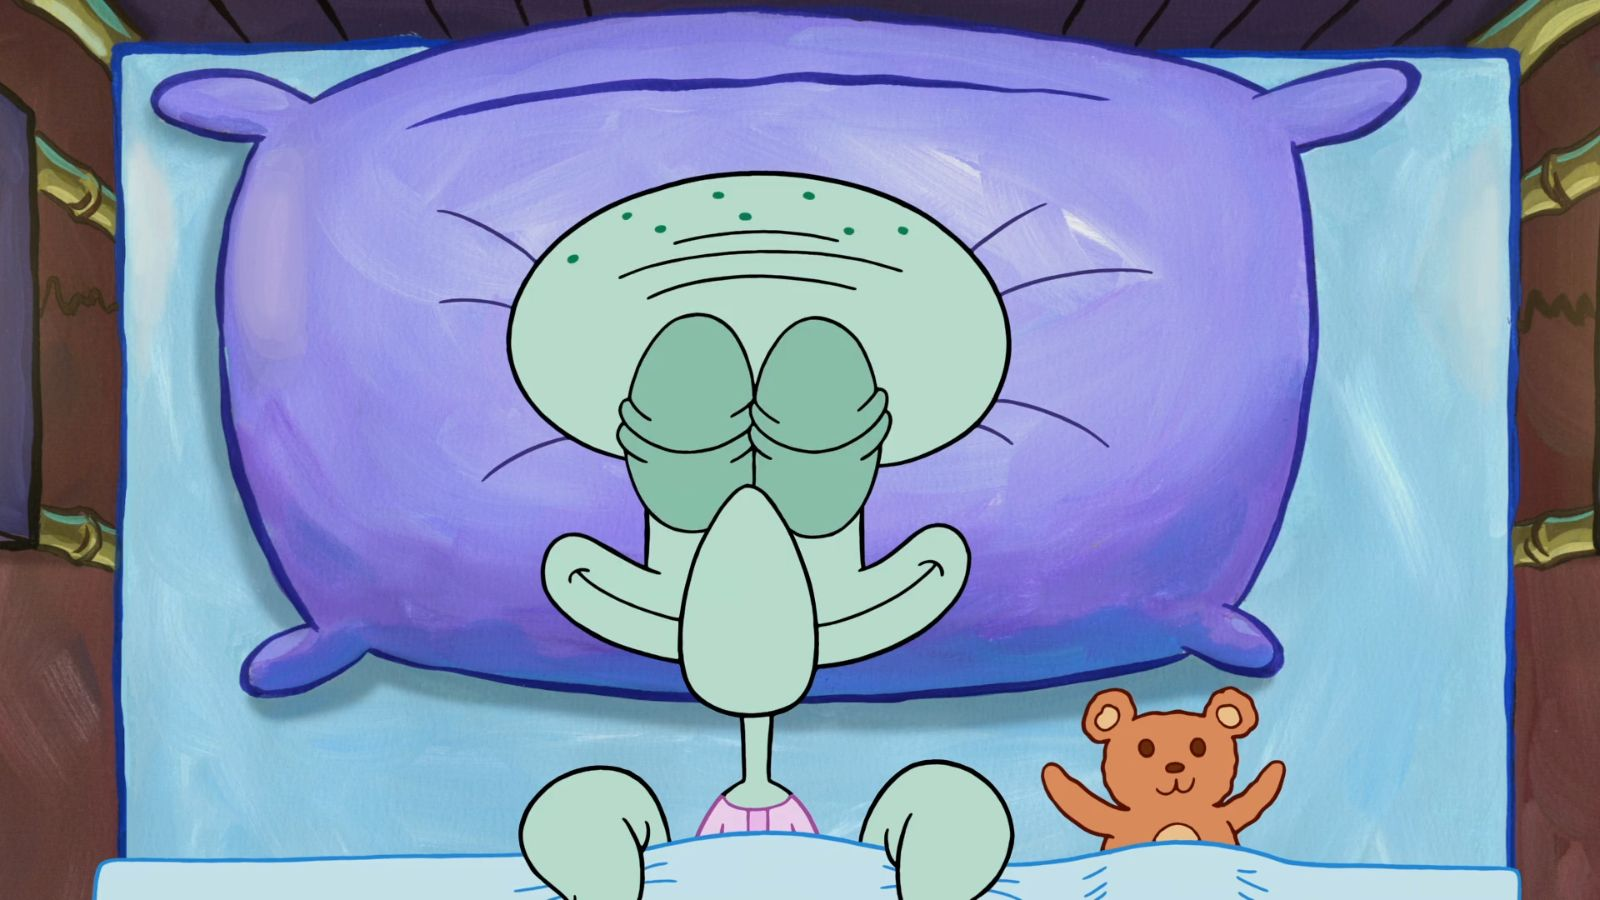 Squidward sleeping meme template